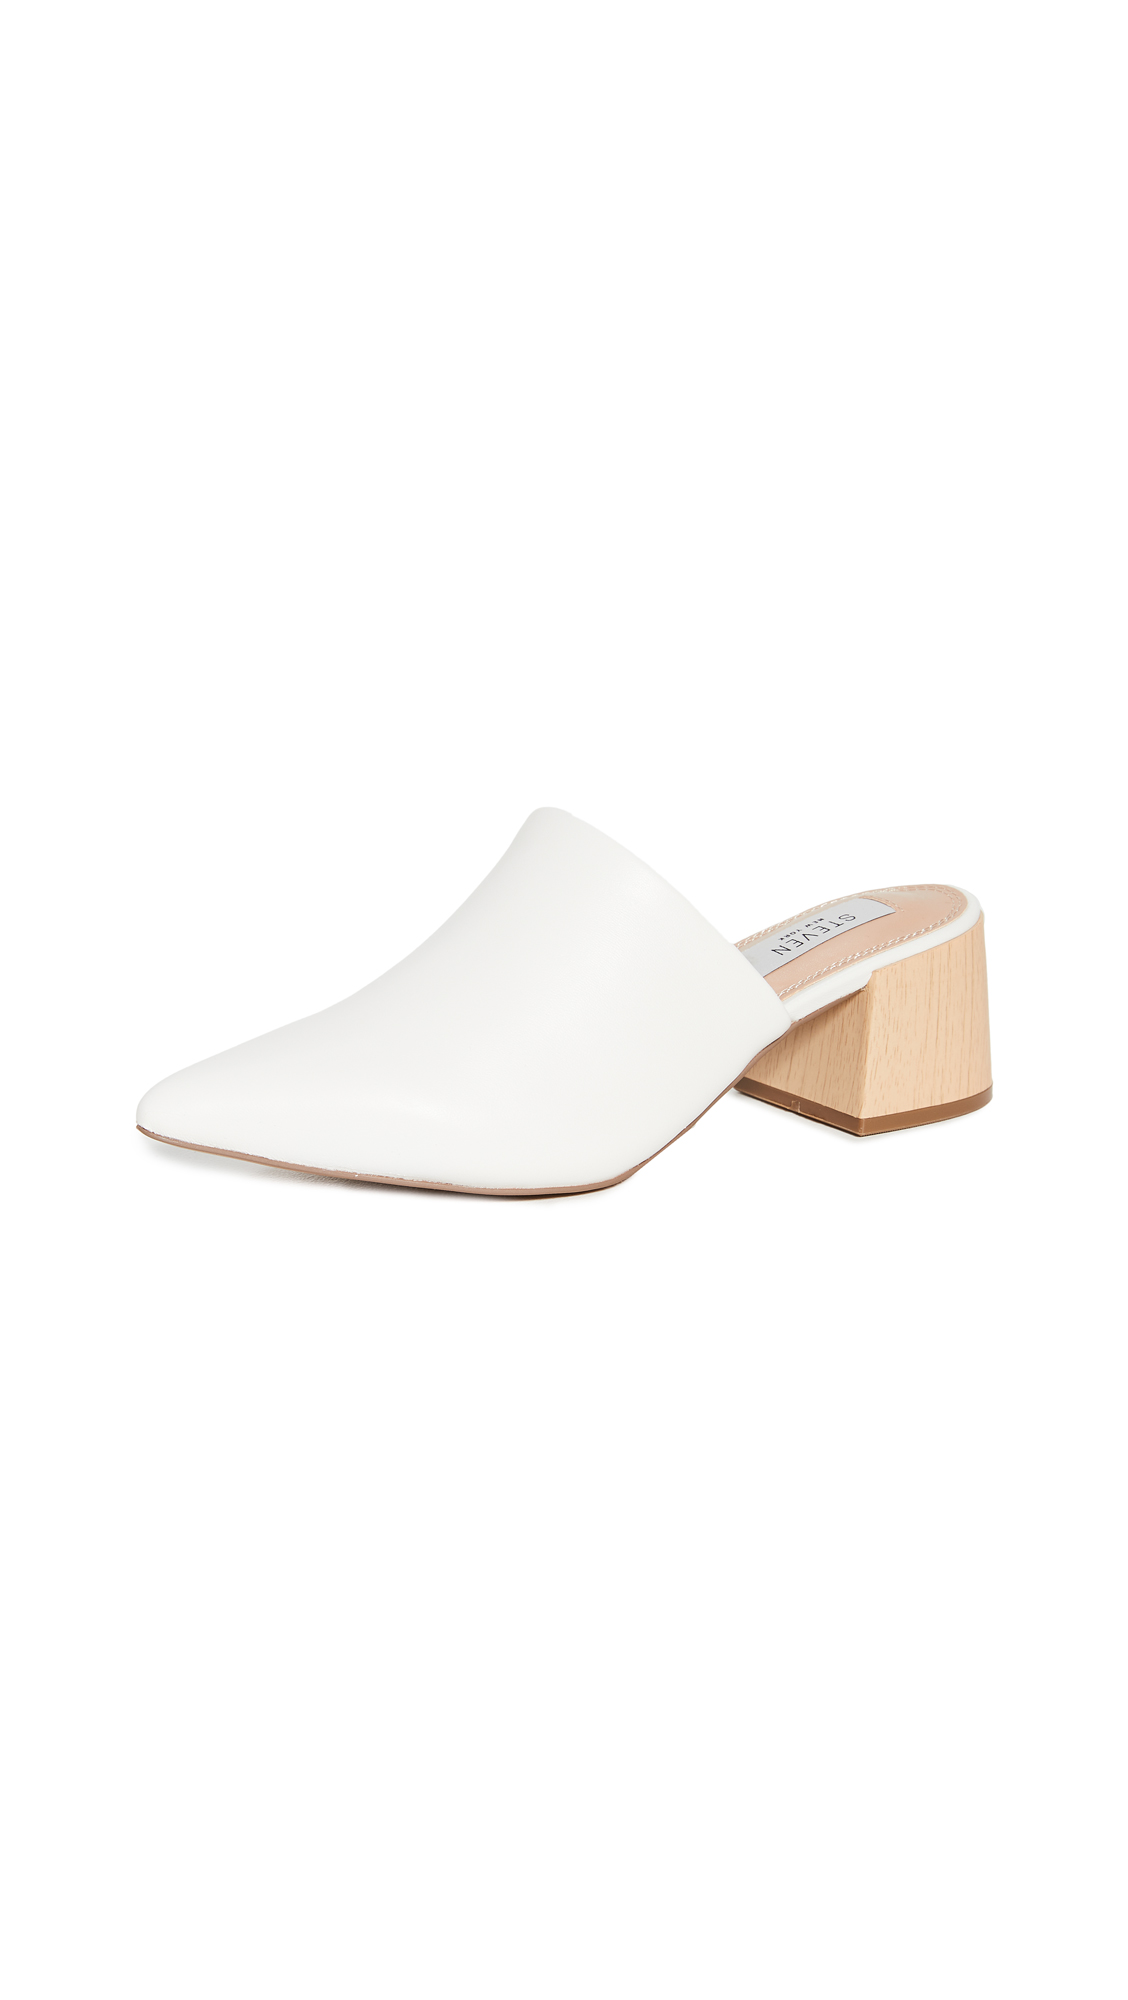 Steven Fannie Mules - 50% Off Sale